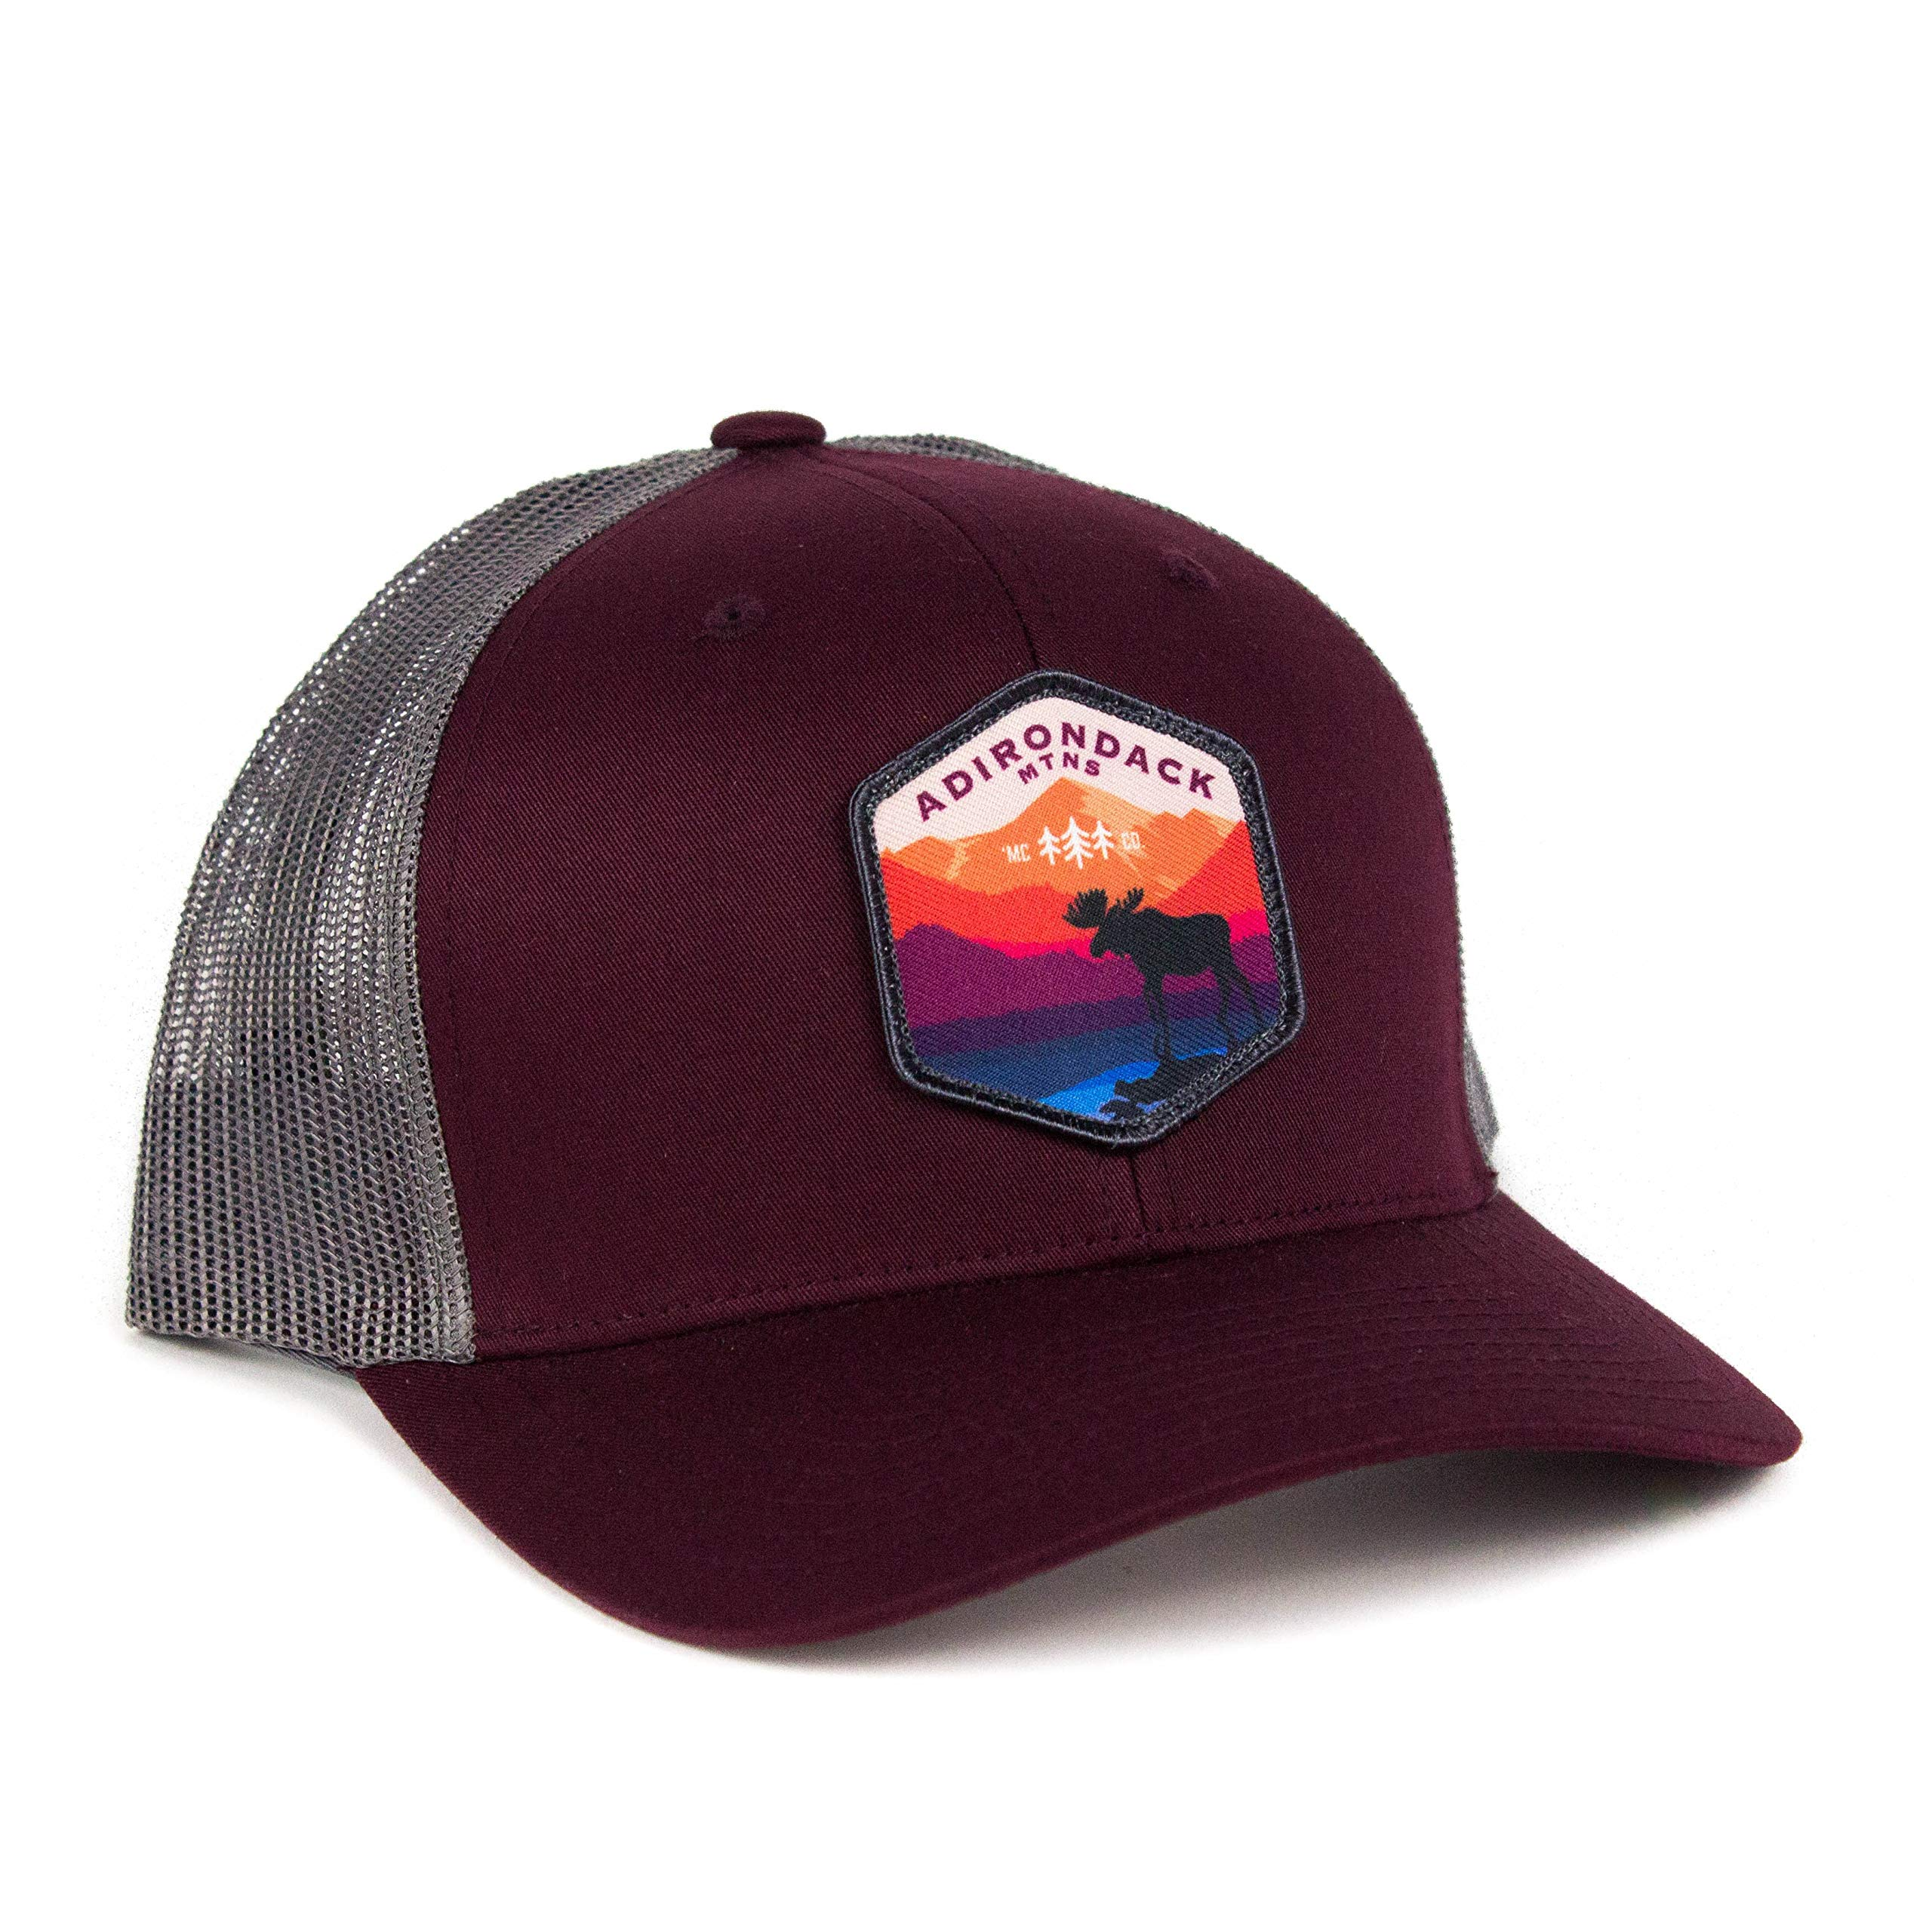 'Merica Clothing Co. Adirondack Mountains Trucker Hat by 'Merica Clothing Co.